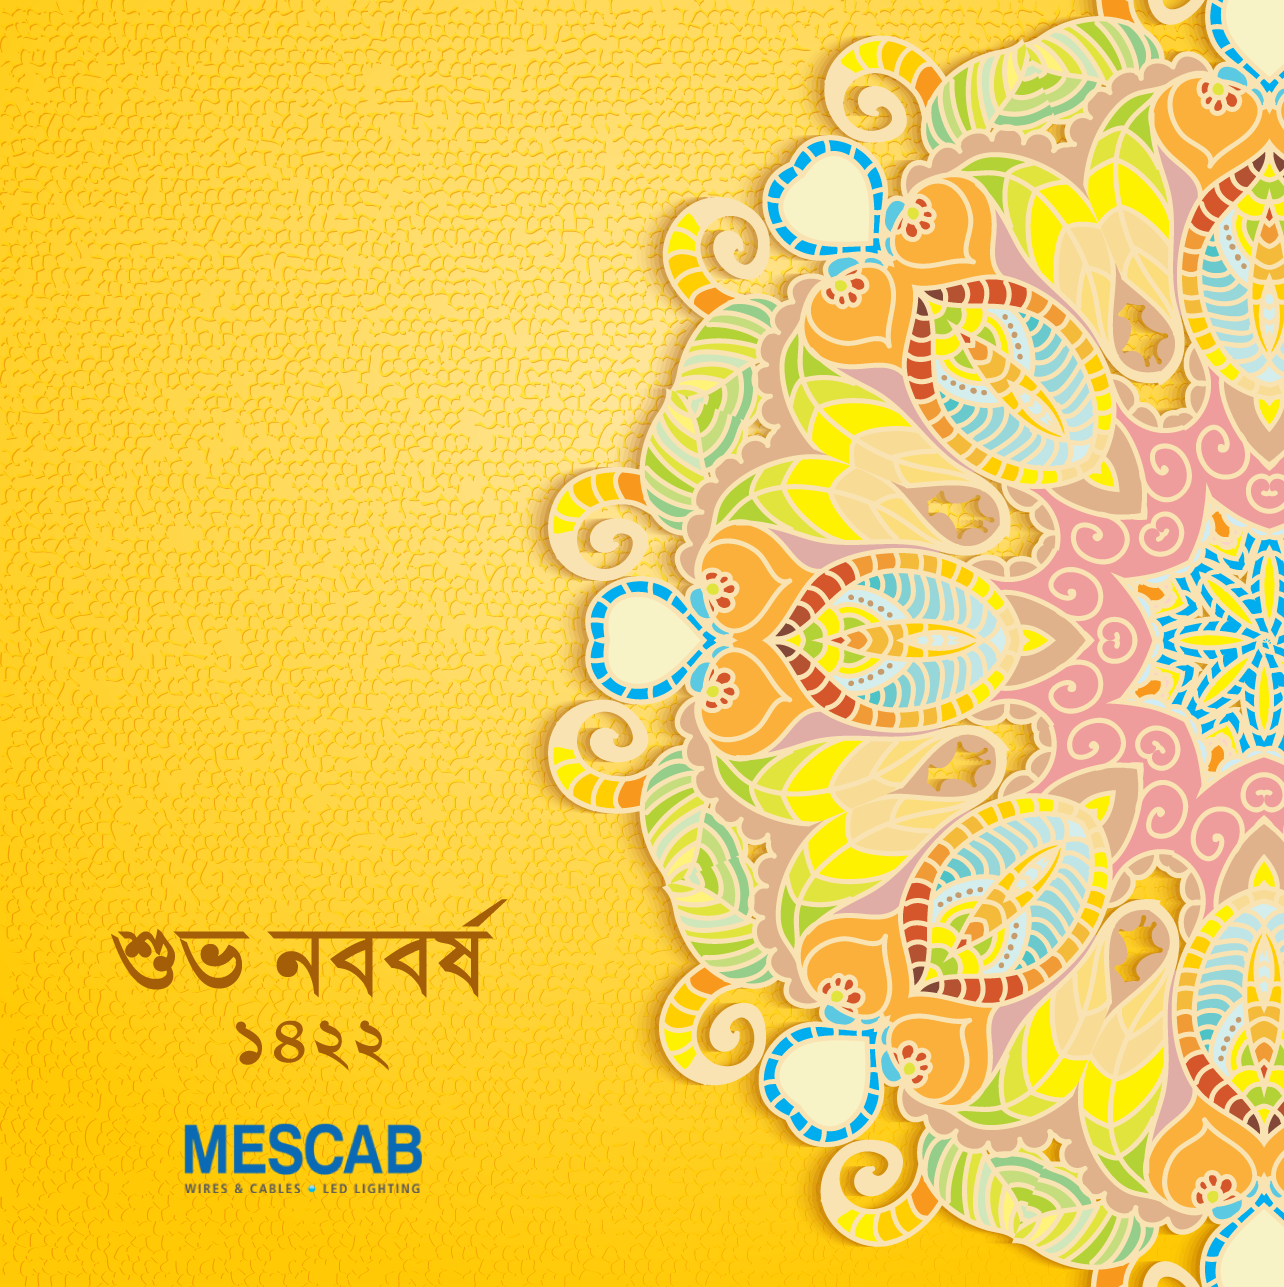 With newer aspiration to make this a greener world, Mescab wishes you Happy Bengali New Year 1422